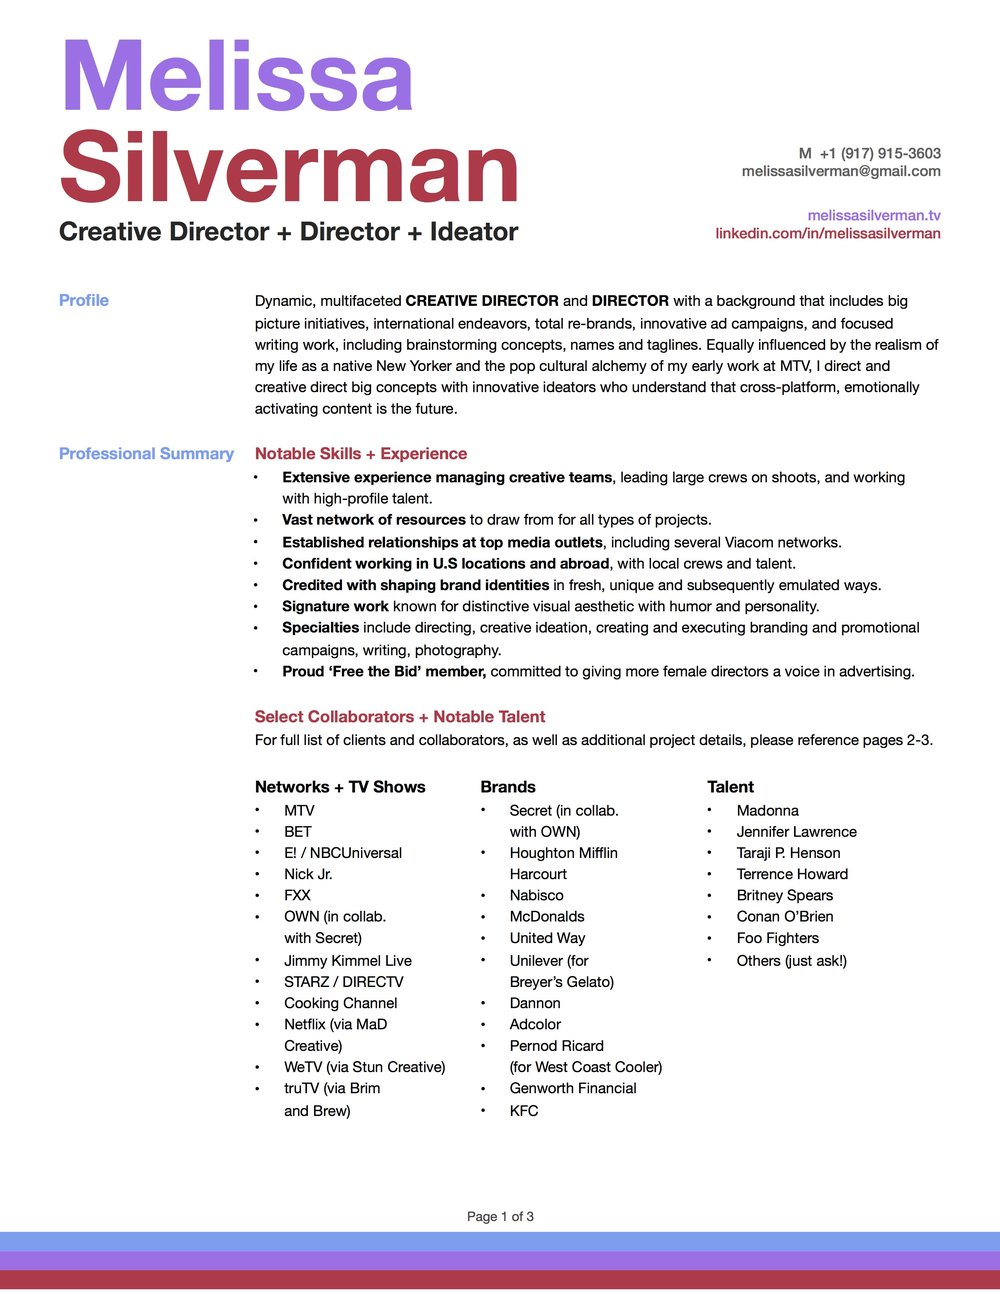 Melissa Silverman_Resume_June2018.jpg